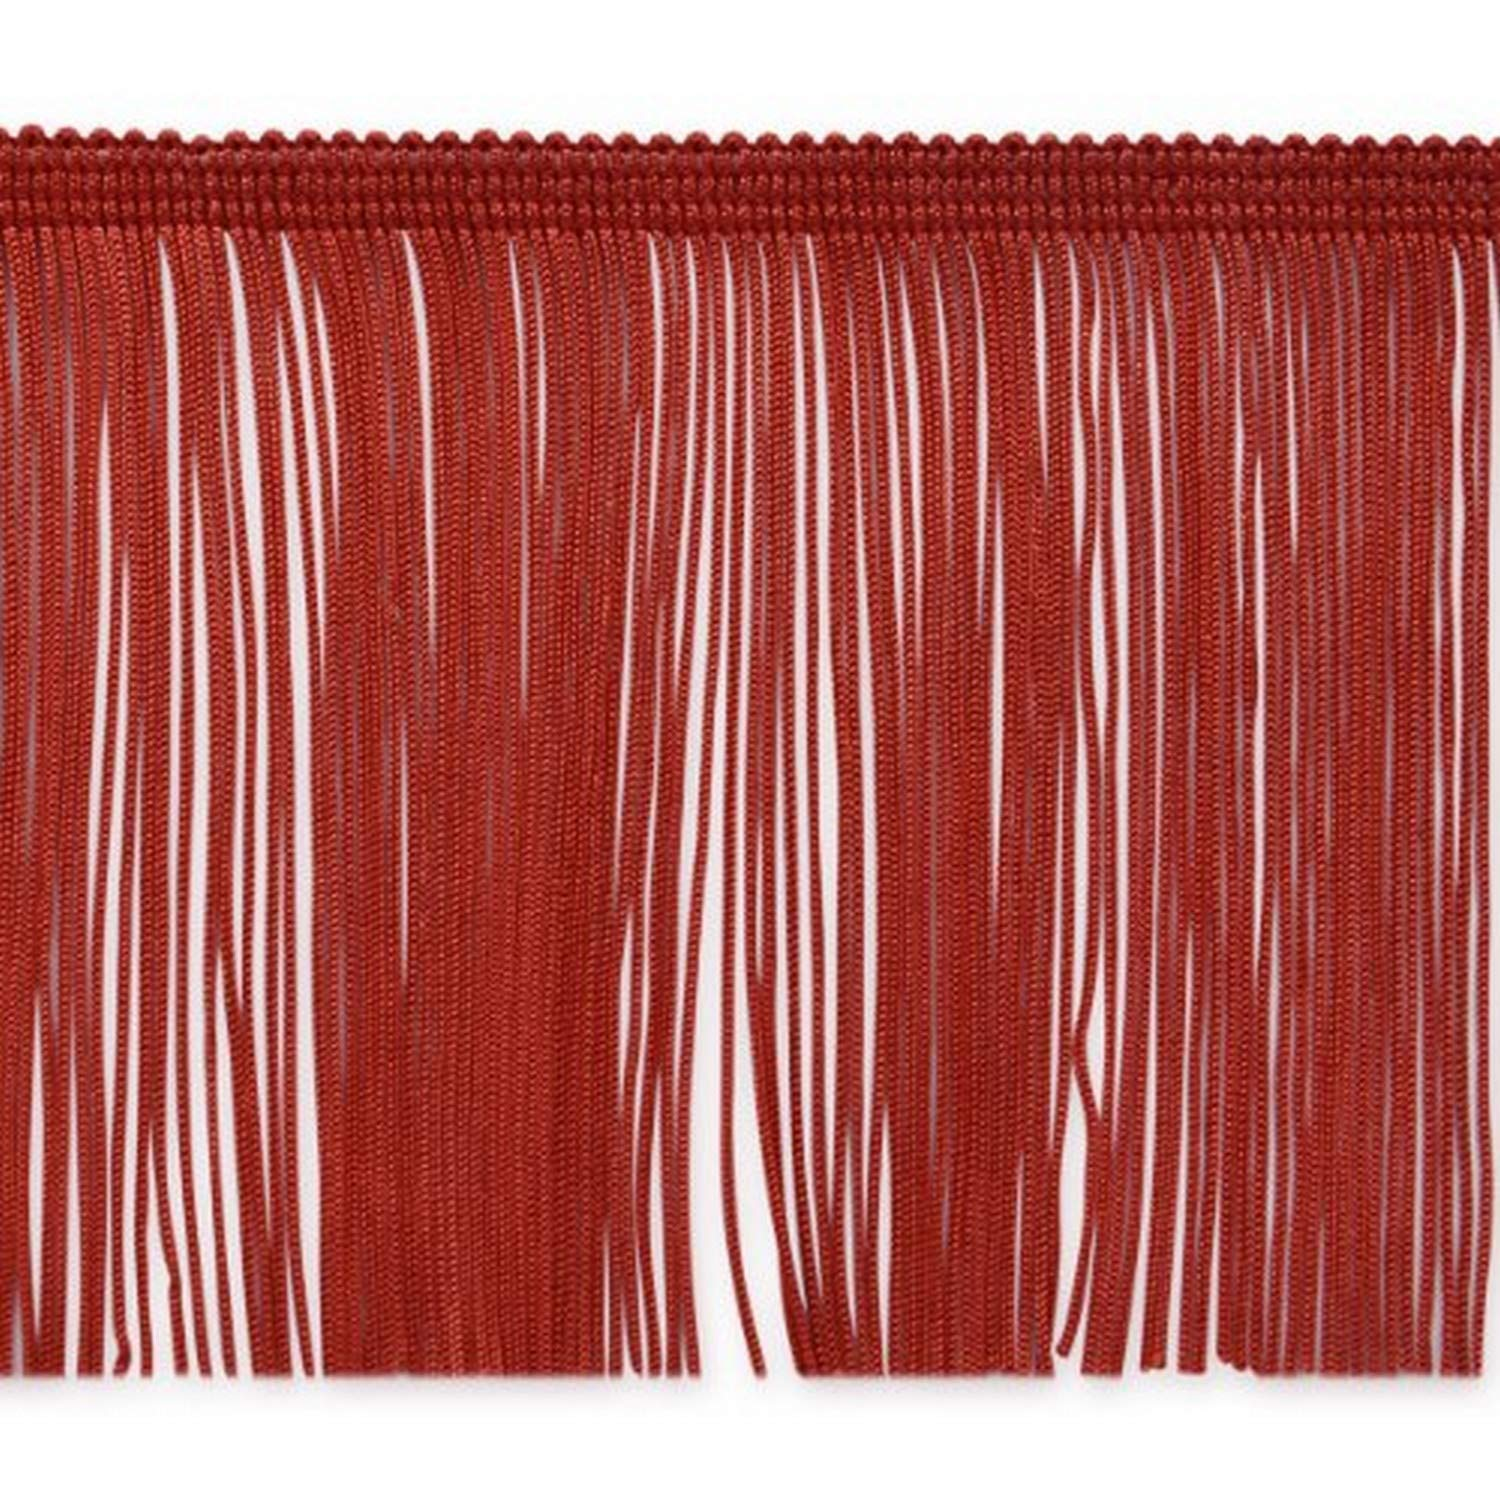 Expo International 5 Yards of 4 Chainette Fringe Trim Plum